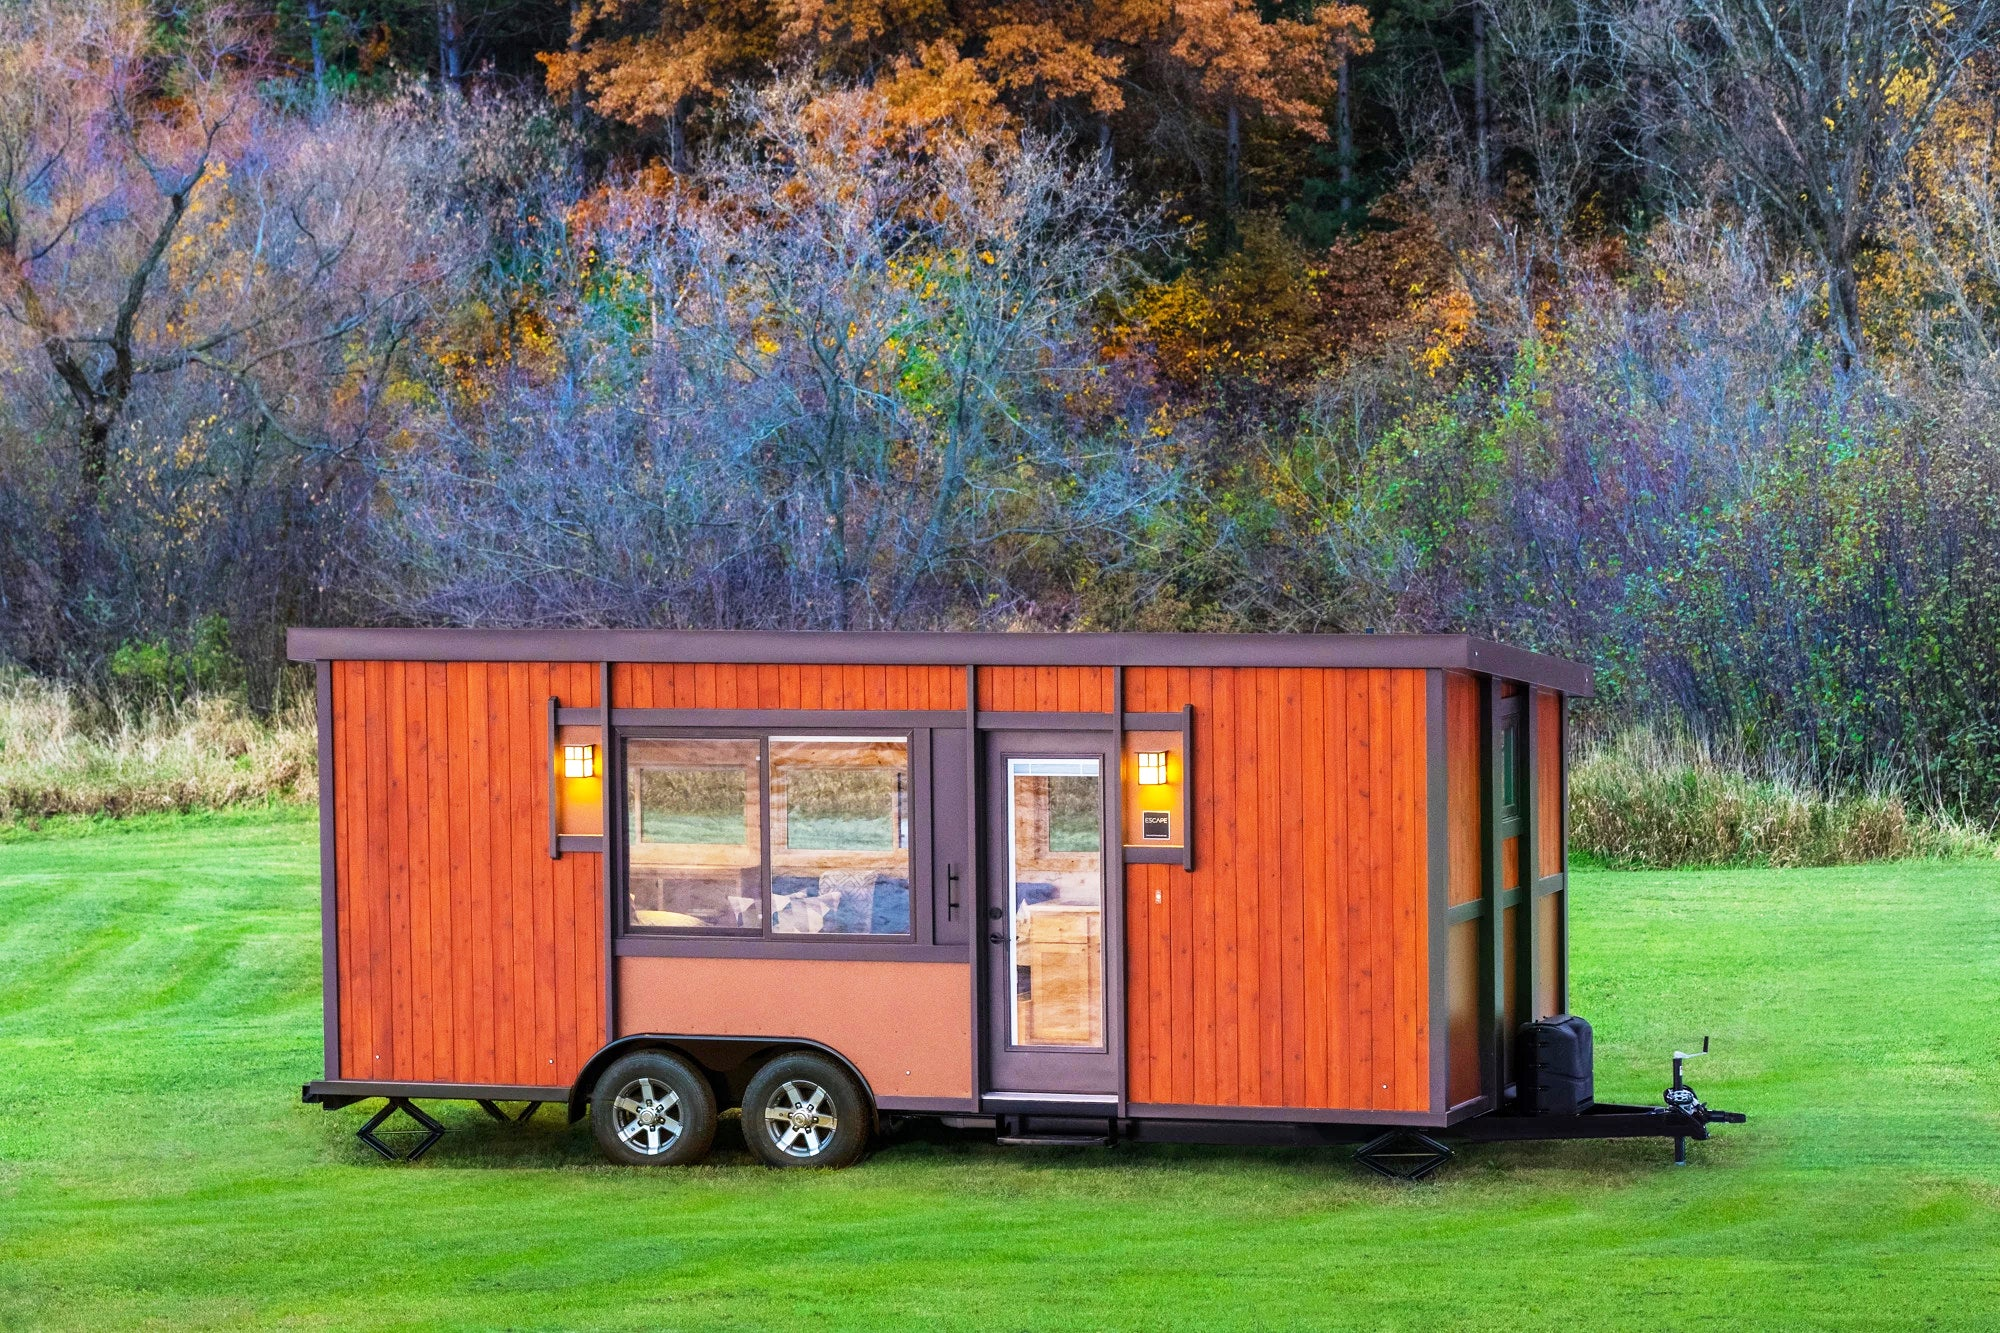 FEATURE_tiny_house_photo_courtesy_of_Escape_09 (1)